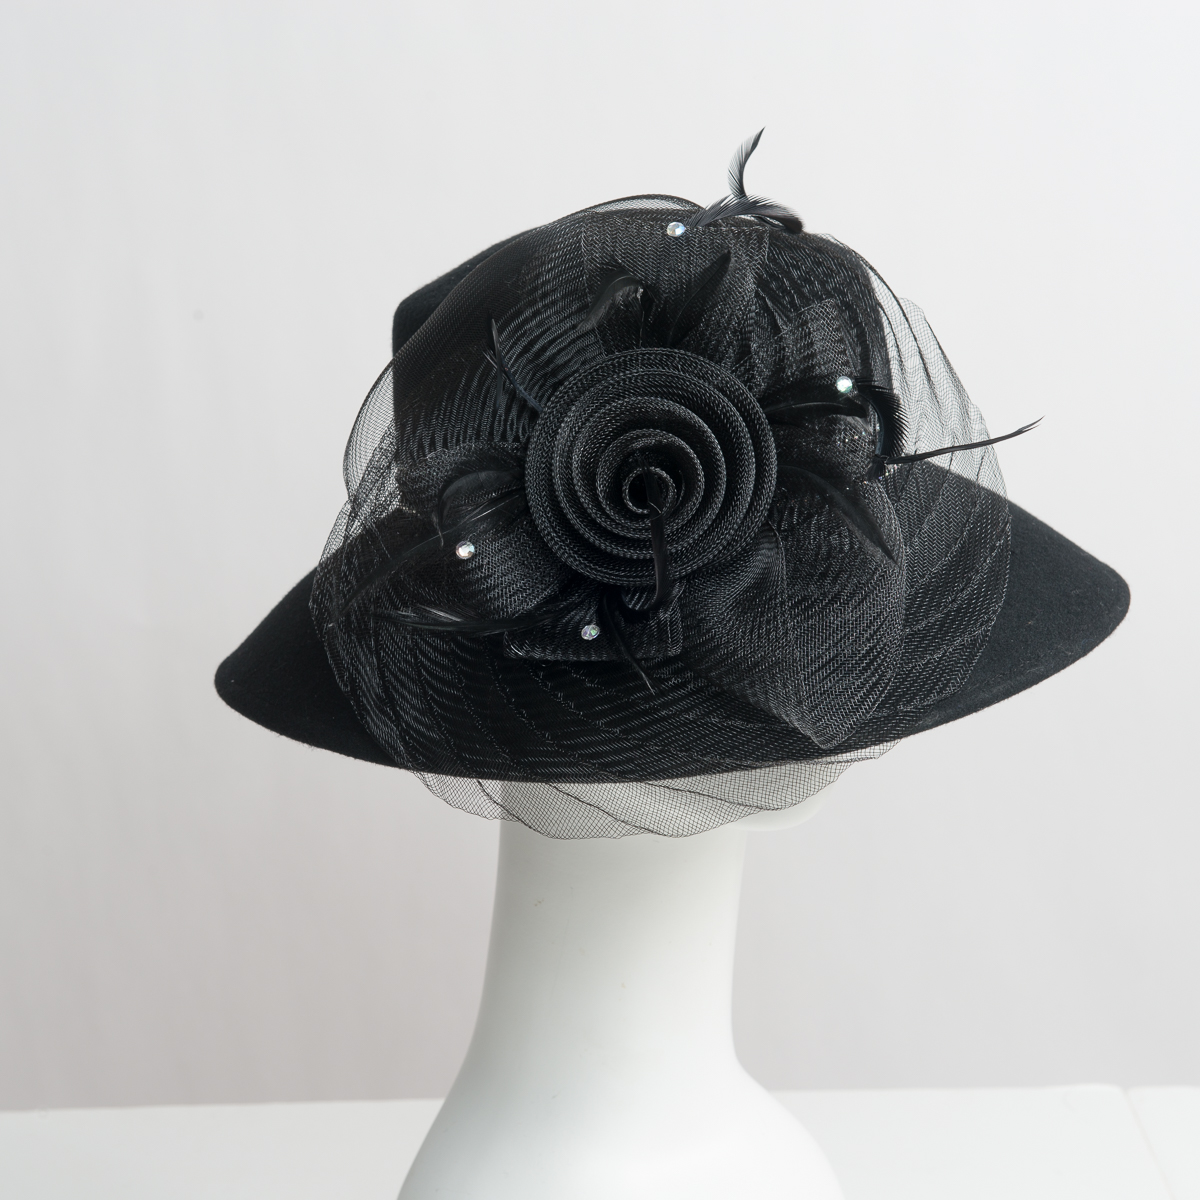 f0220b0006920a Black Lampshade Hat-Crinoline Feather Hats-400612-BK- Sun Yorkos | KaKyCo  Accessories